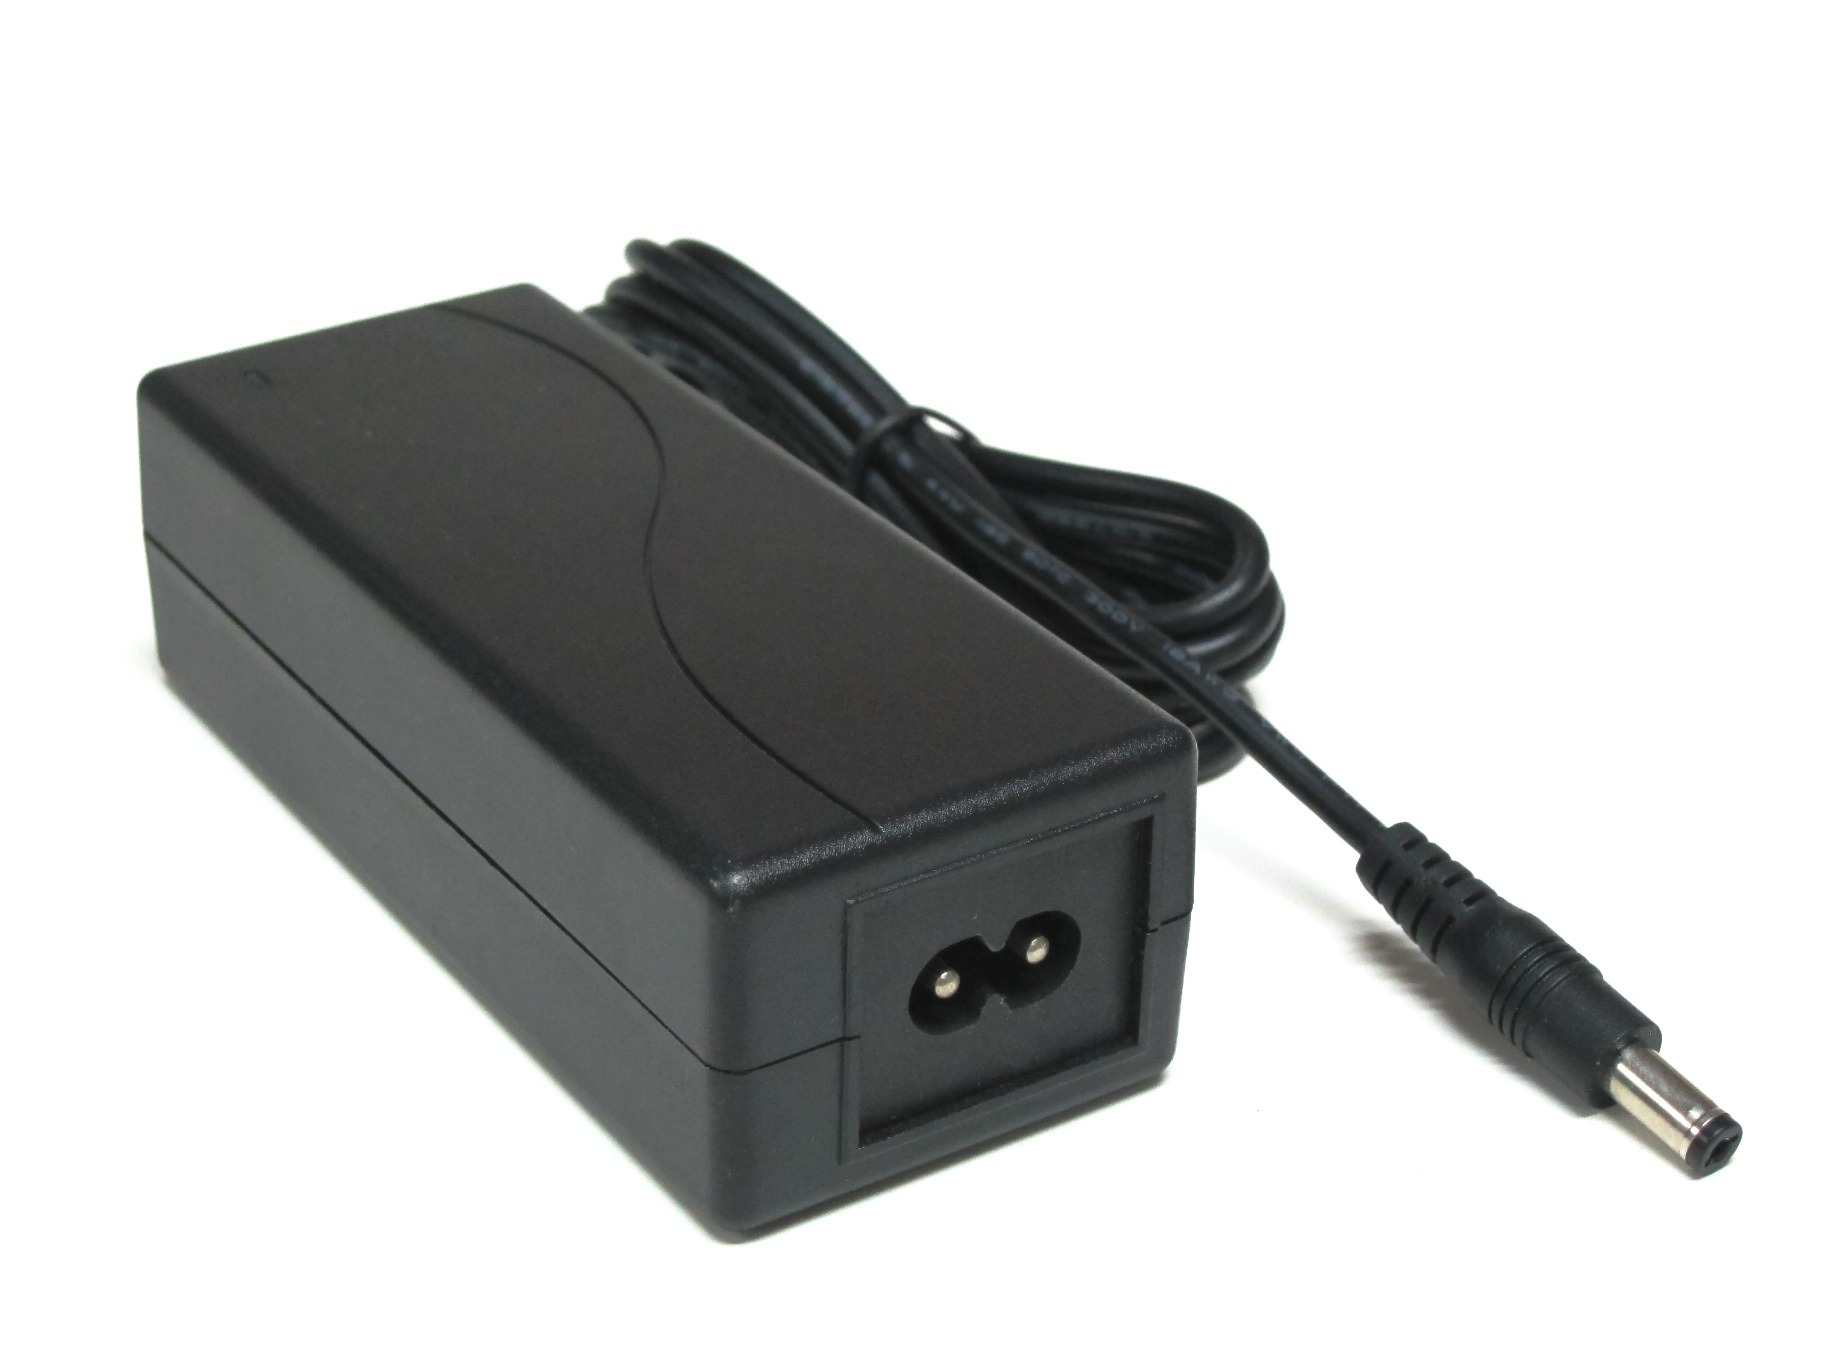 Dvd player adapter